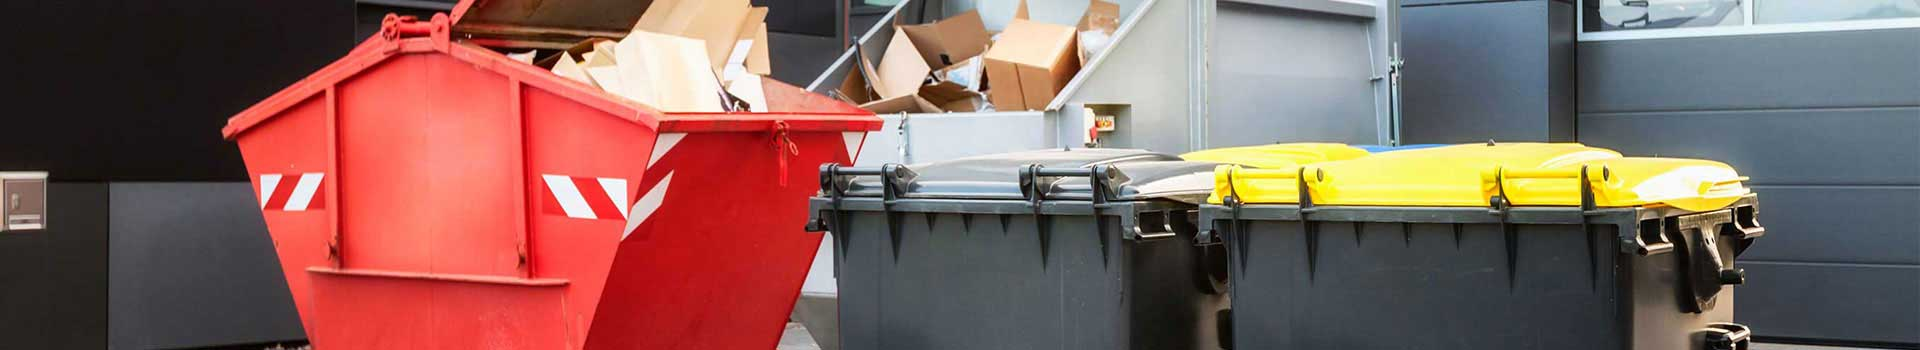 Trade Waste Management Services